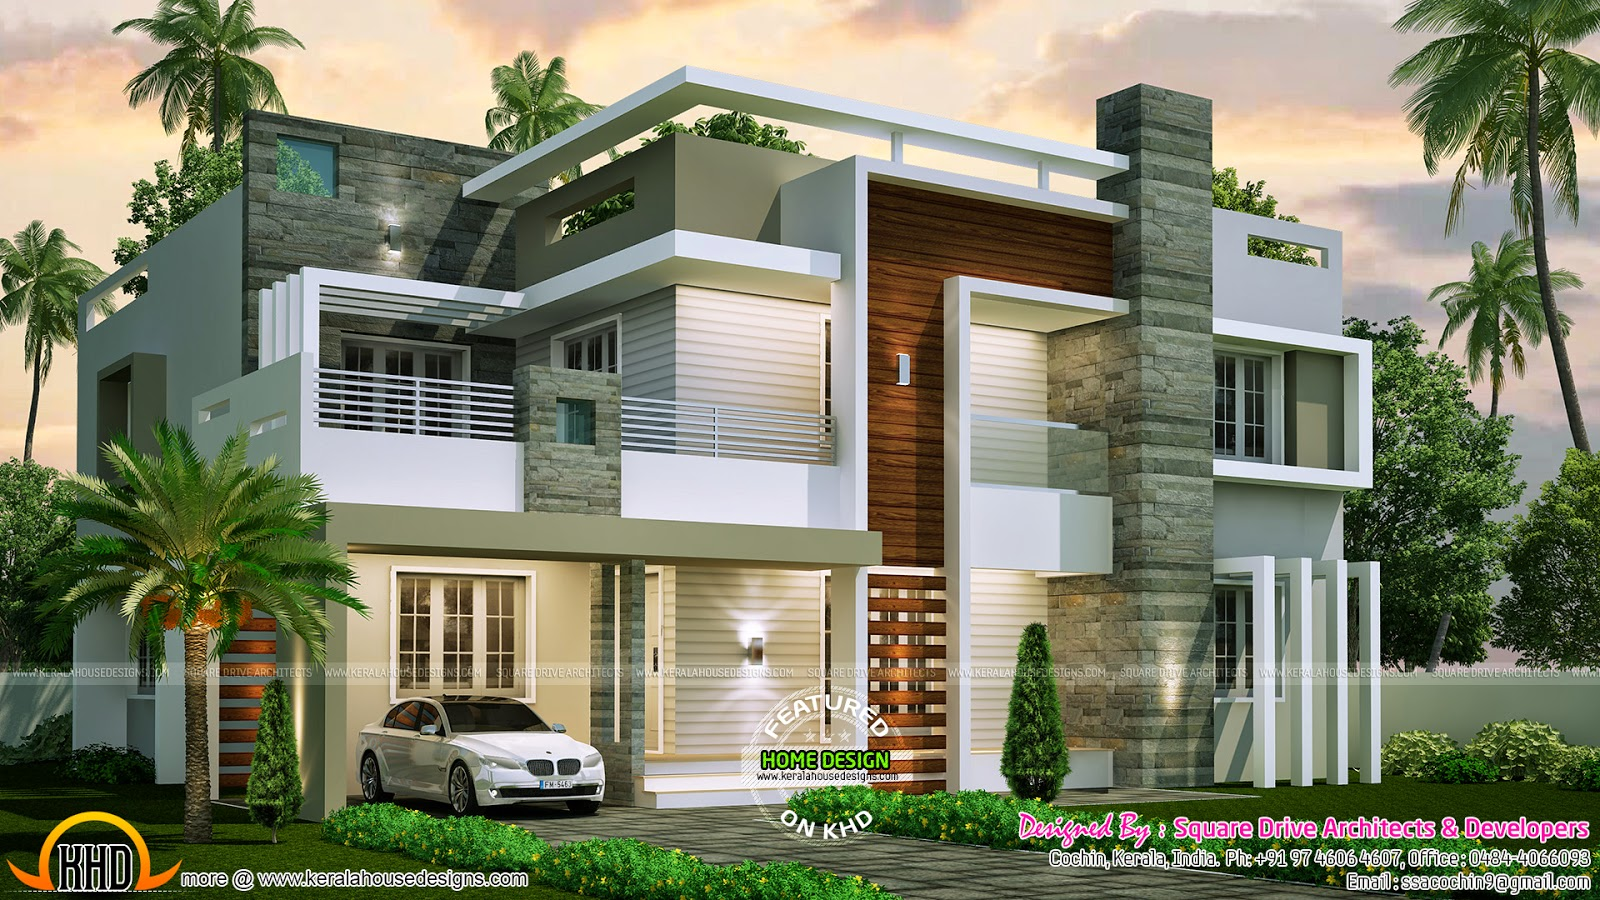 4 bedroom contemporary home design kerala home design for Modern 4 bedroom house floor plans